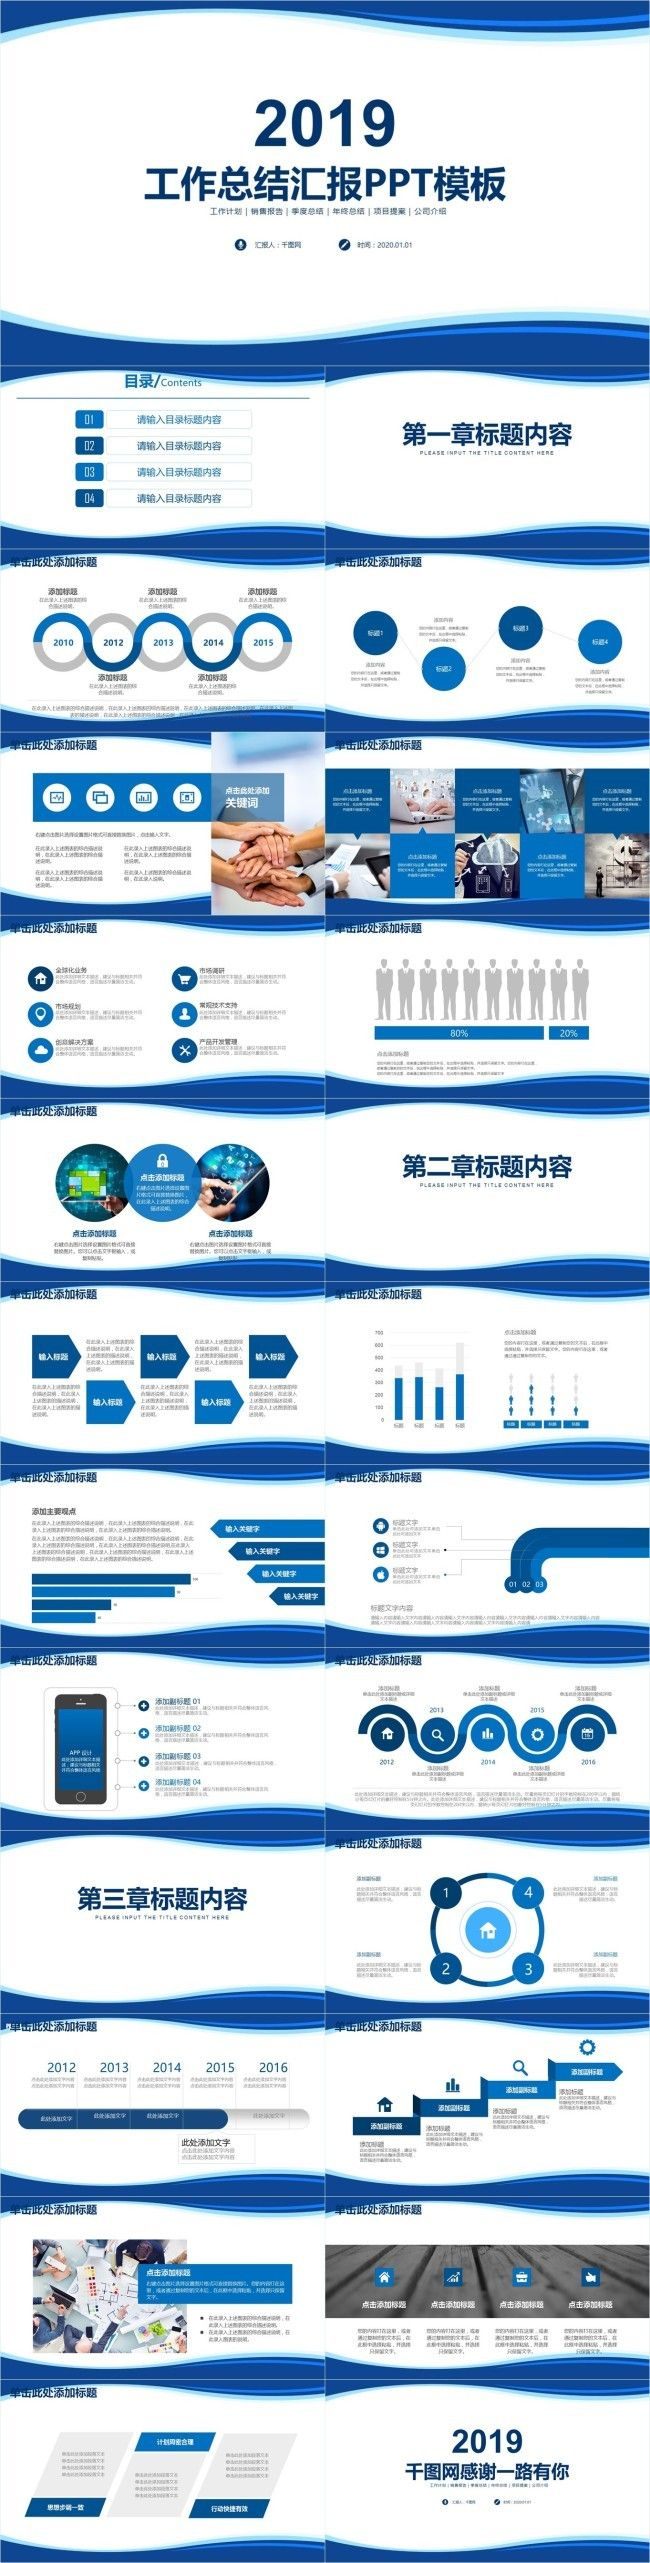 Work summary report PPT template